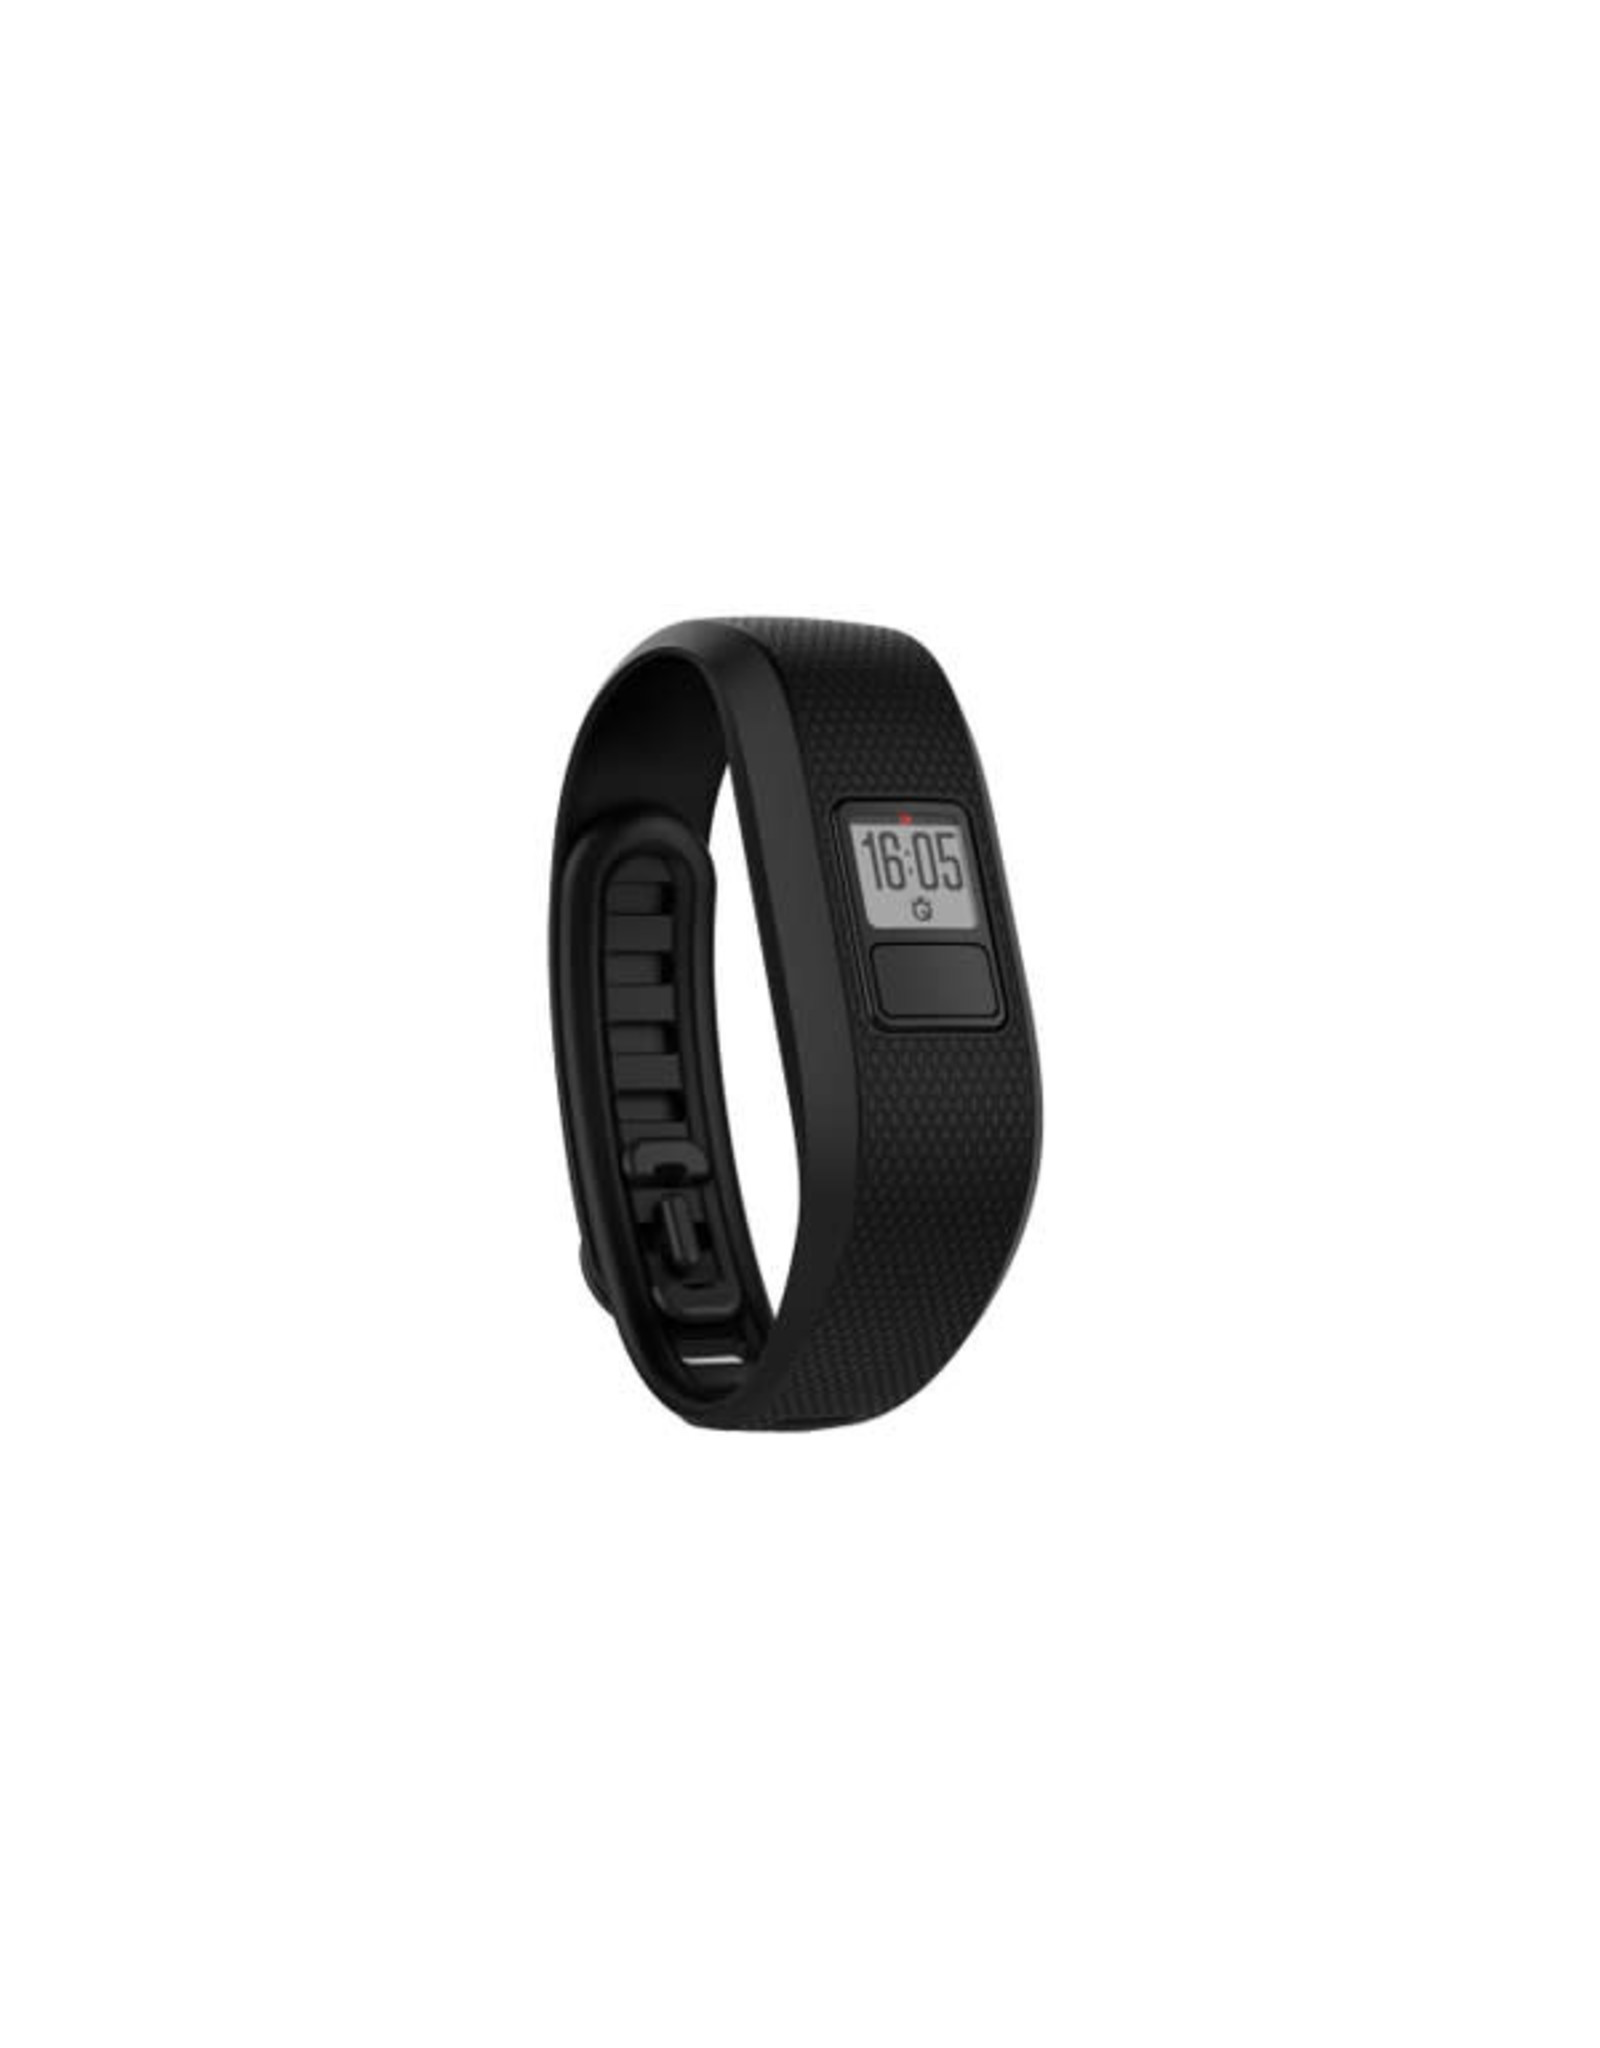 Garmin Garmin 010-01608-06 Vivofit 3 Activity Tracker Black Silicone Band